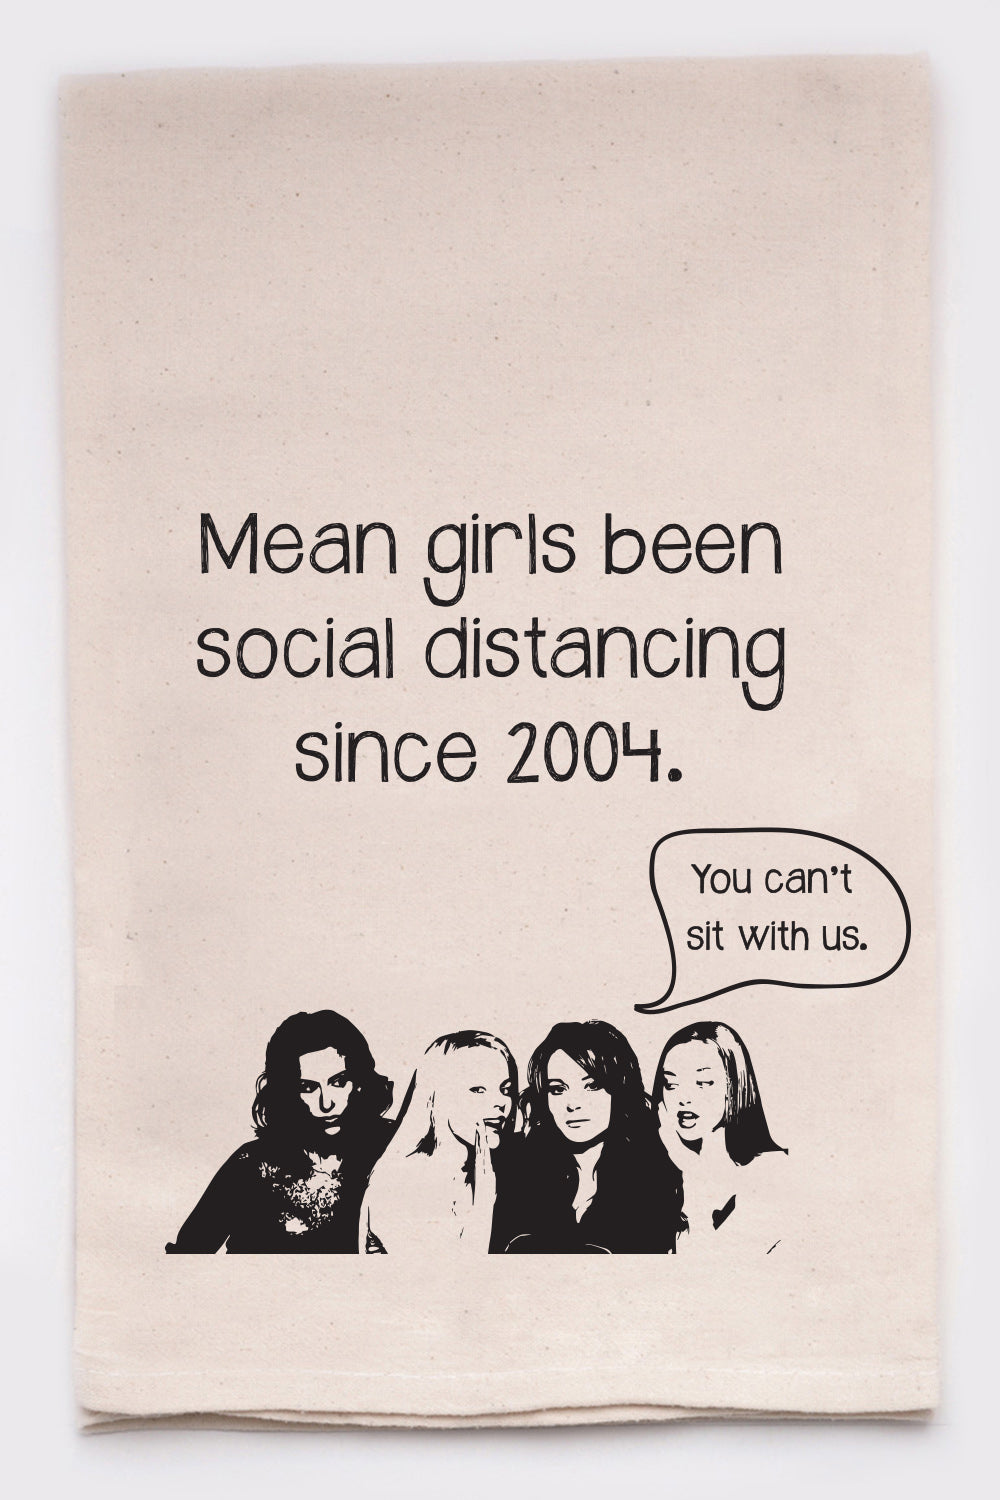 Mean girls been social distancing since 2004, you can't sit with us